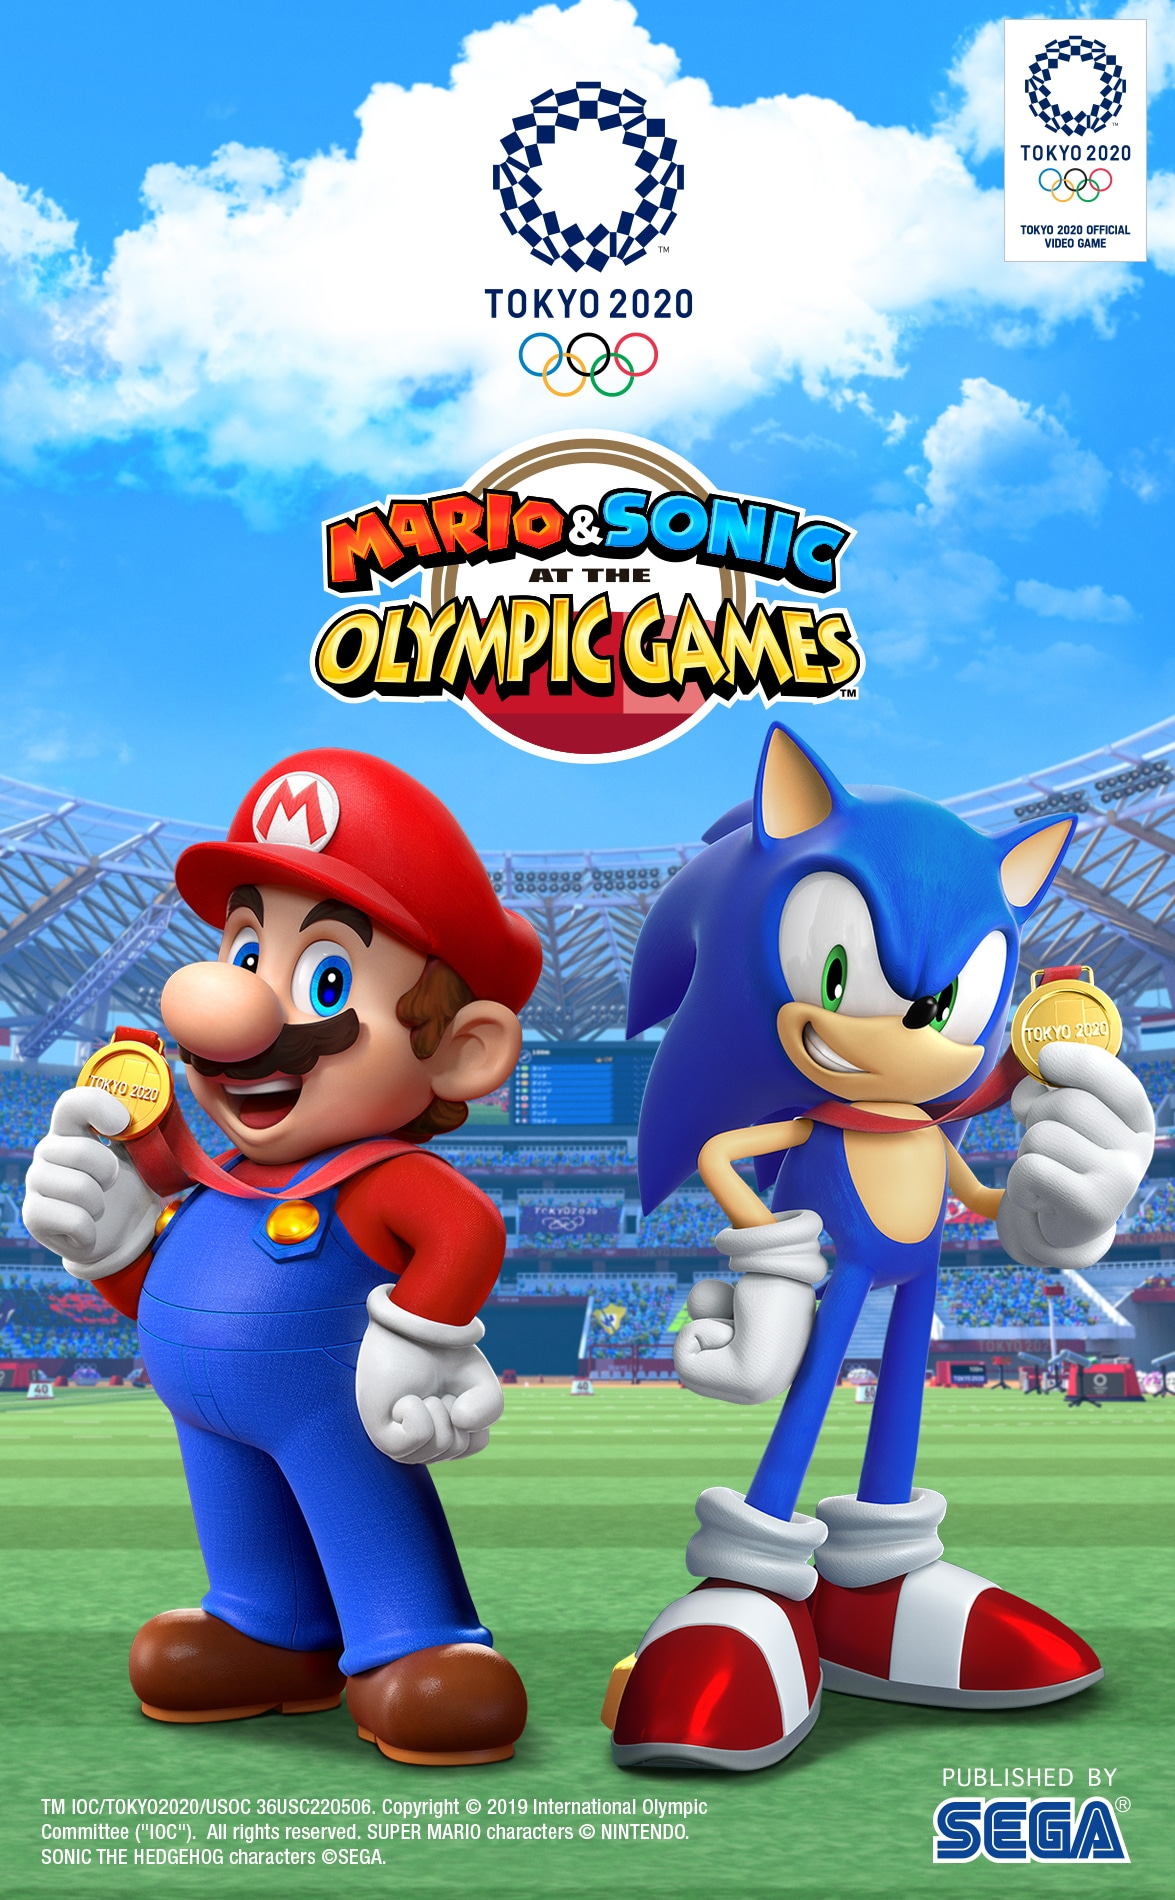 Mario and Sonic Horizontal. It's party time, and everyone's invited! Team up with Mario, Sonic, and friends on Nintendo Switch in action-packed sporting events! Bring your best moves to the track, the gym, the ring, or the water in dozens of different party games everyone will enjoy.